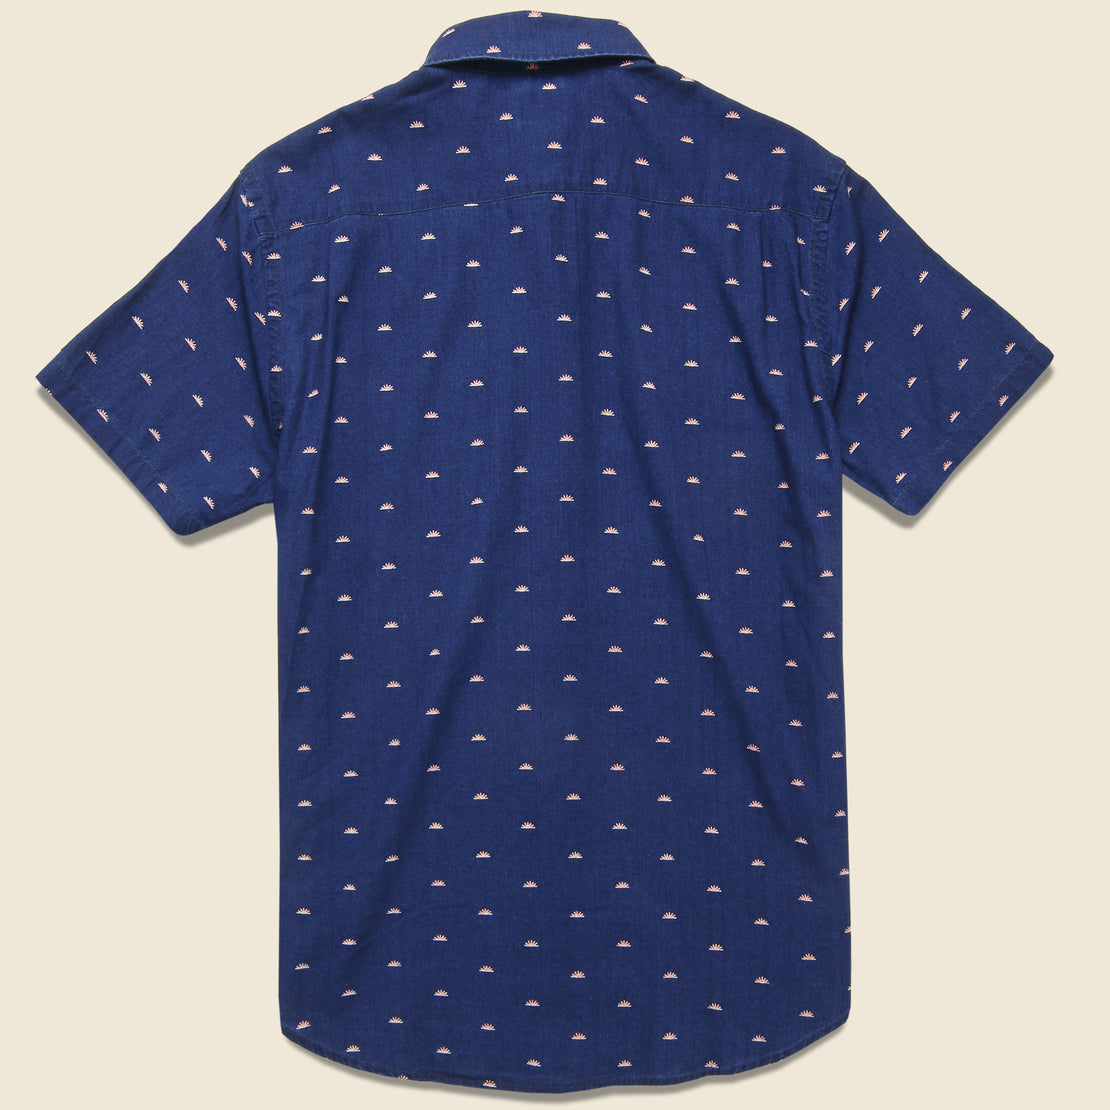 Coast Shirt - Sunrise Indigo